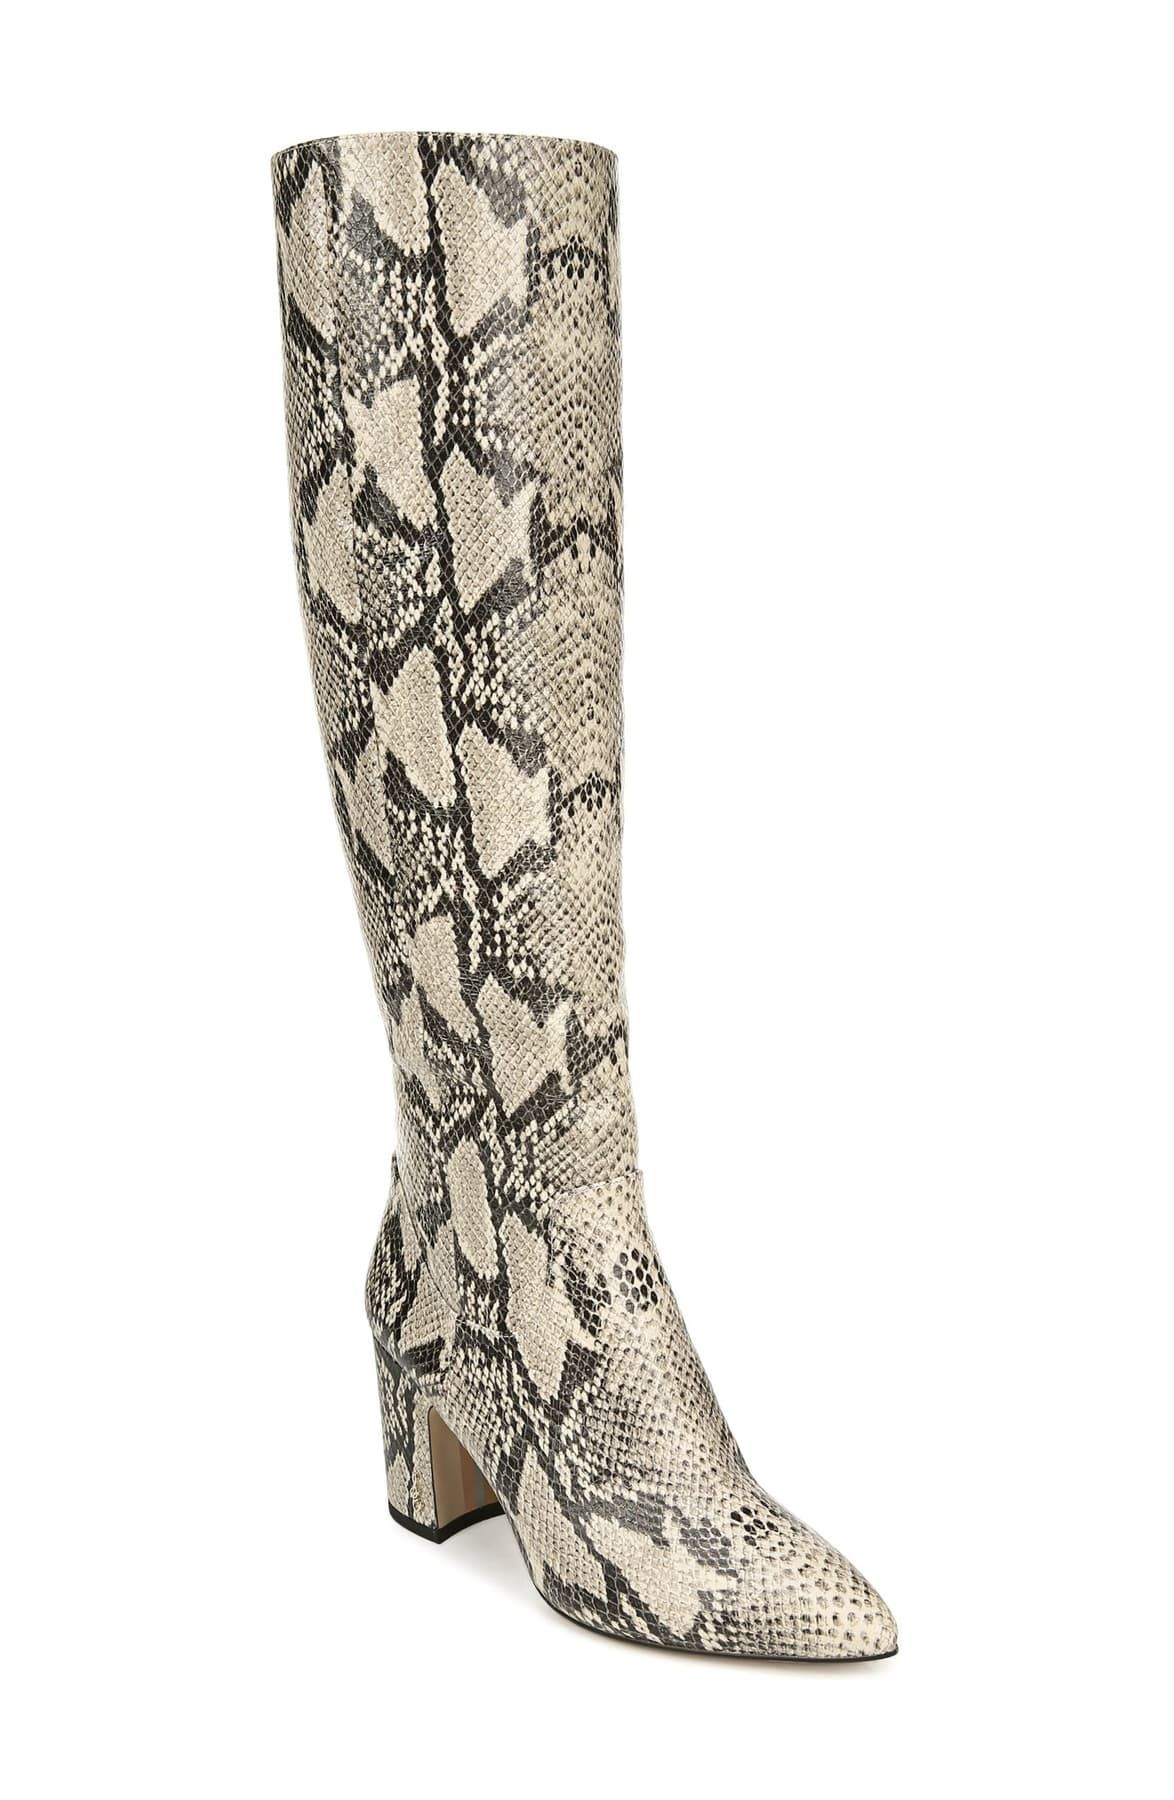 Zip Up Knee High Boots Womens New Snake Leopard Printed Pull On Block Mid Heels